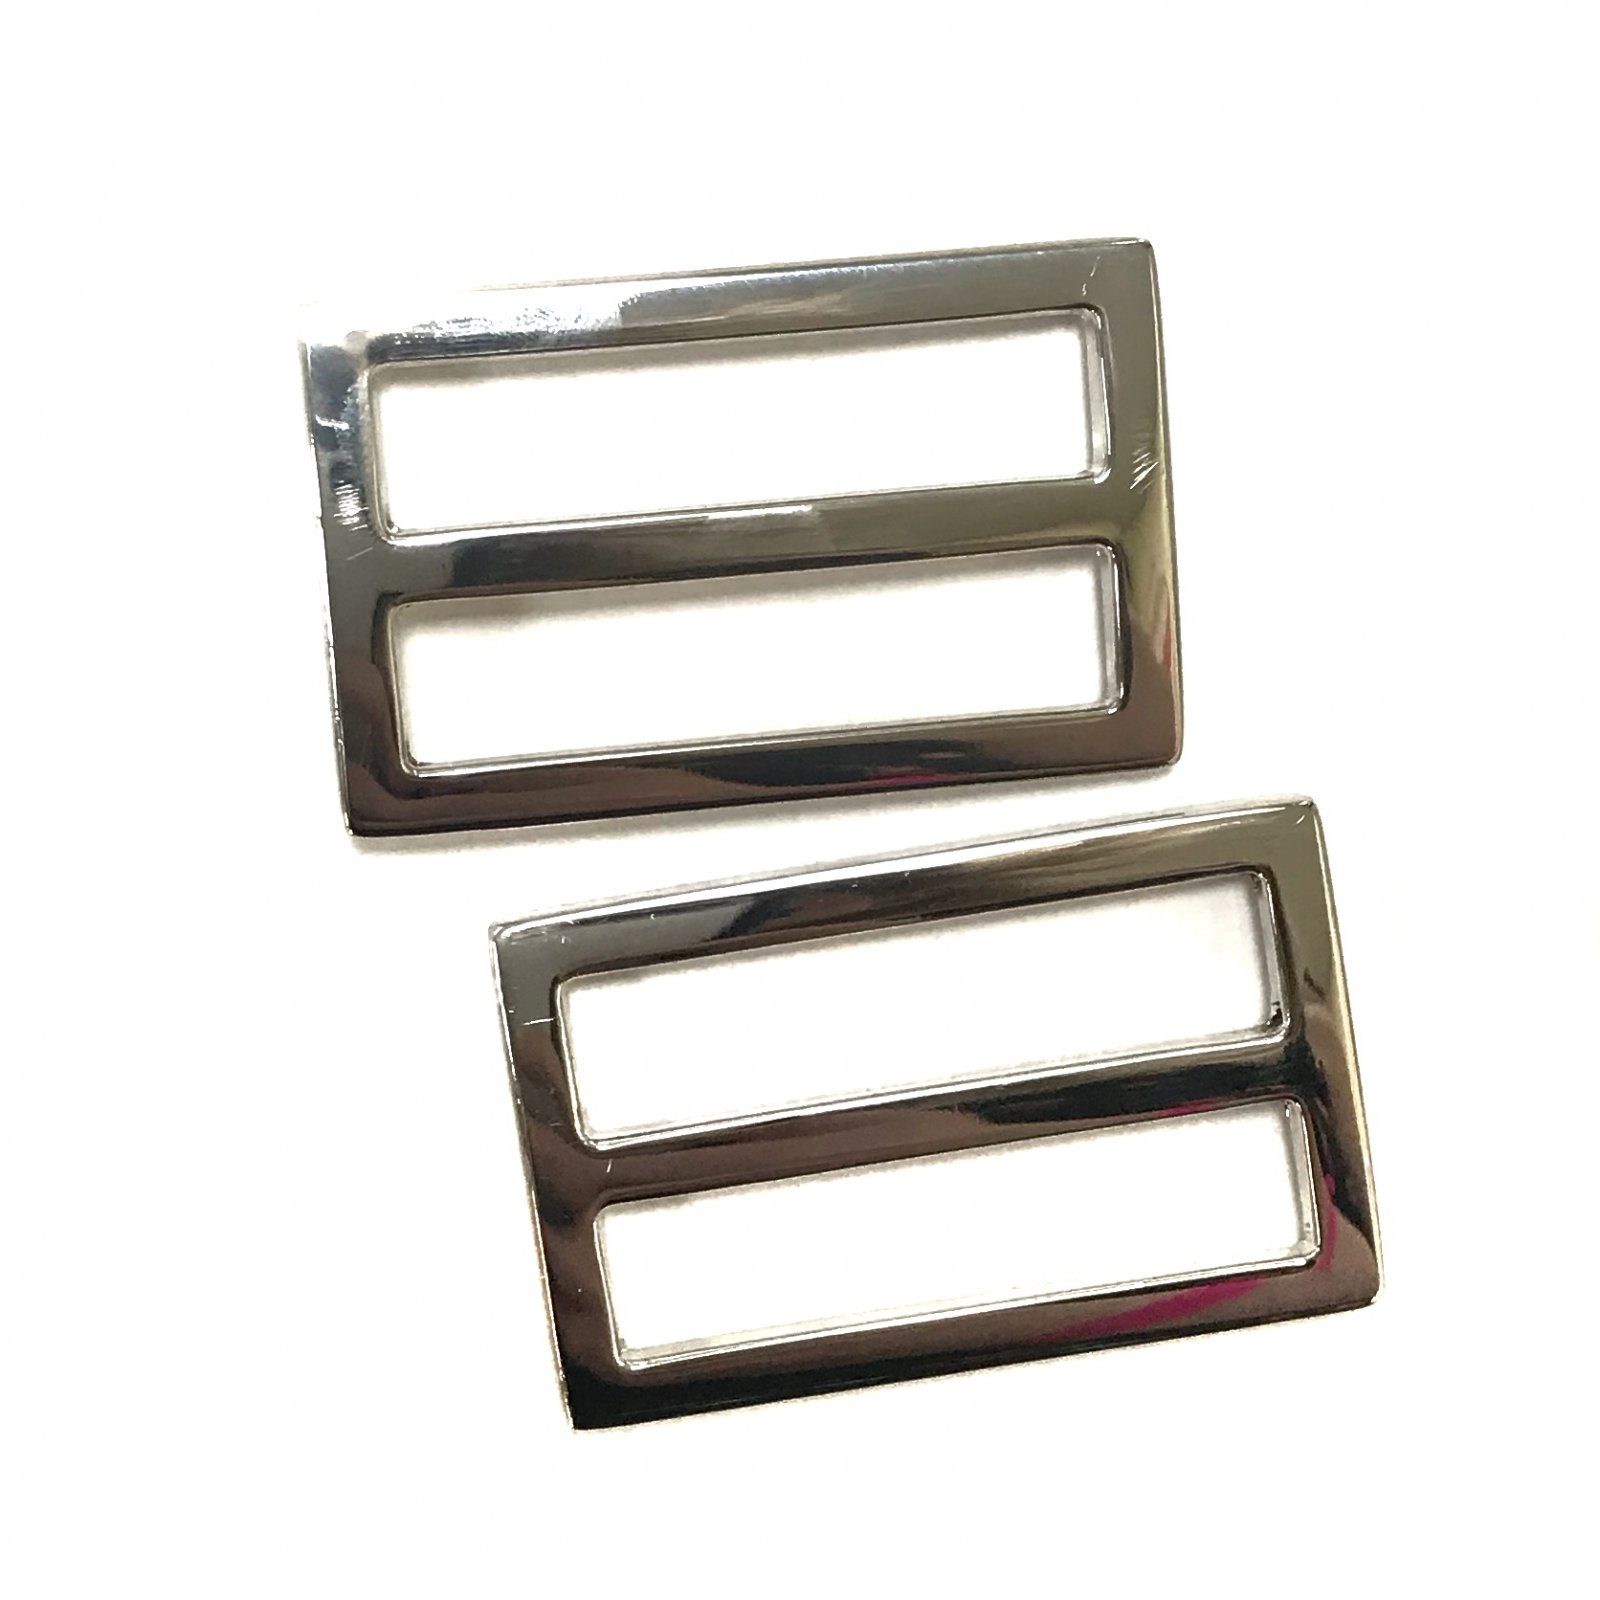 Rectangle Strap Slides- Set of 2 - 1 1/2